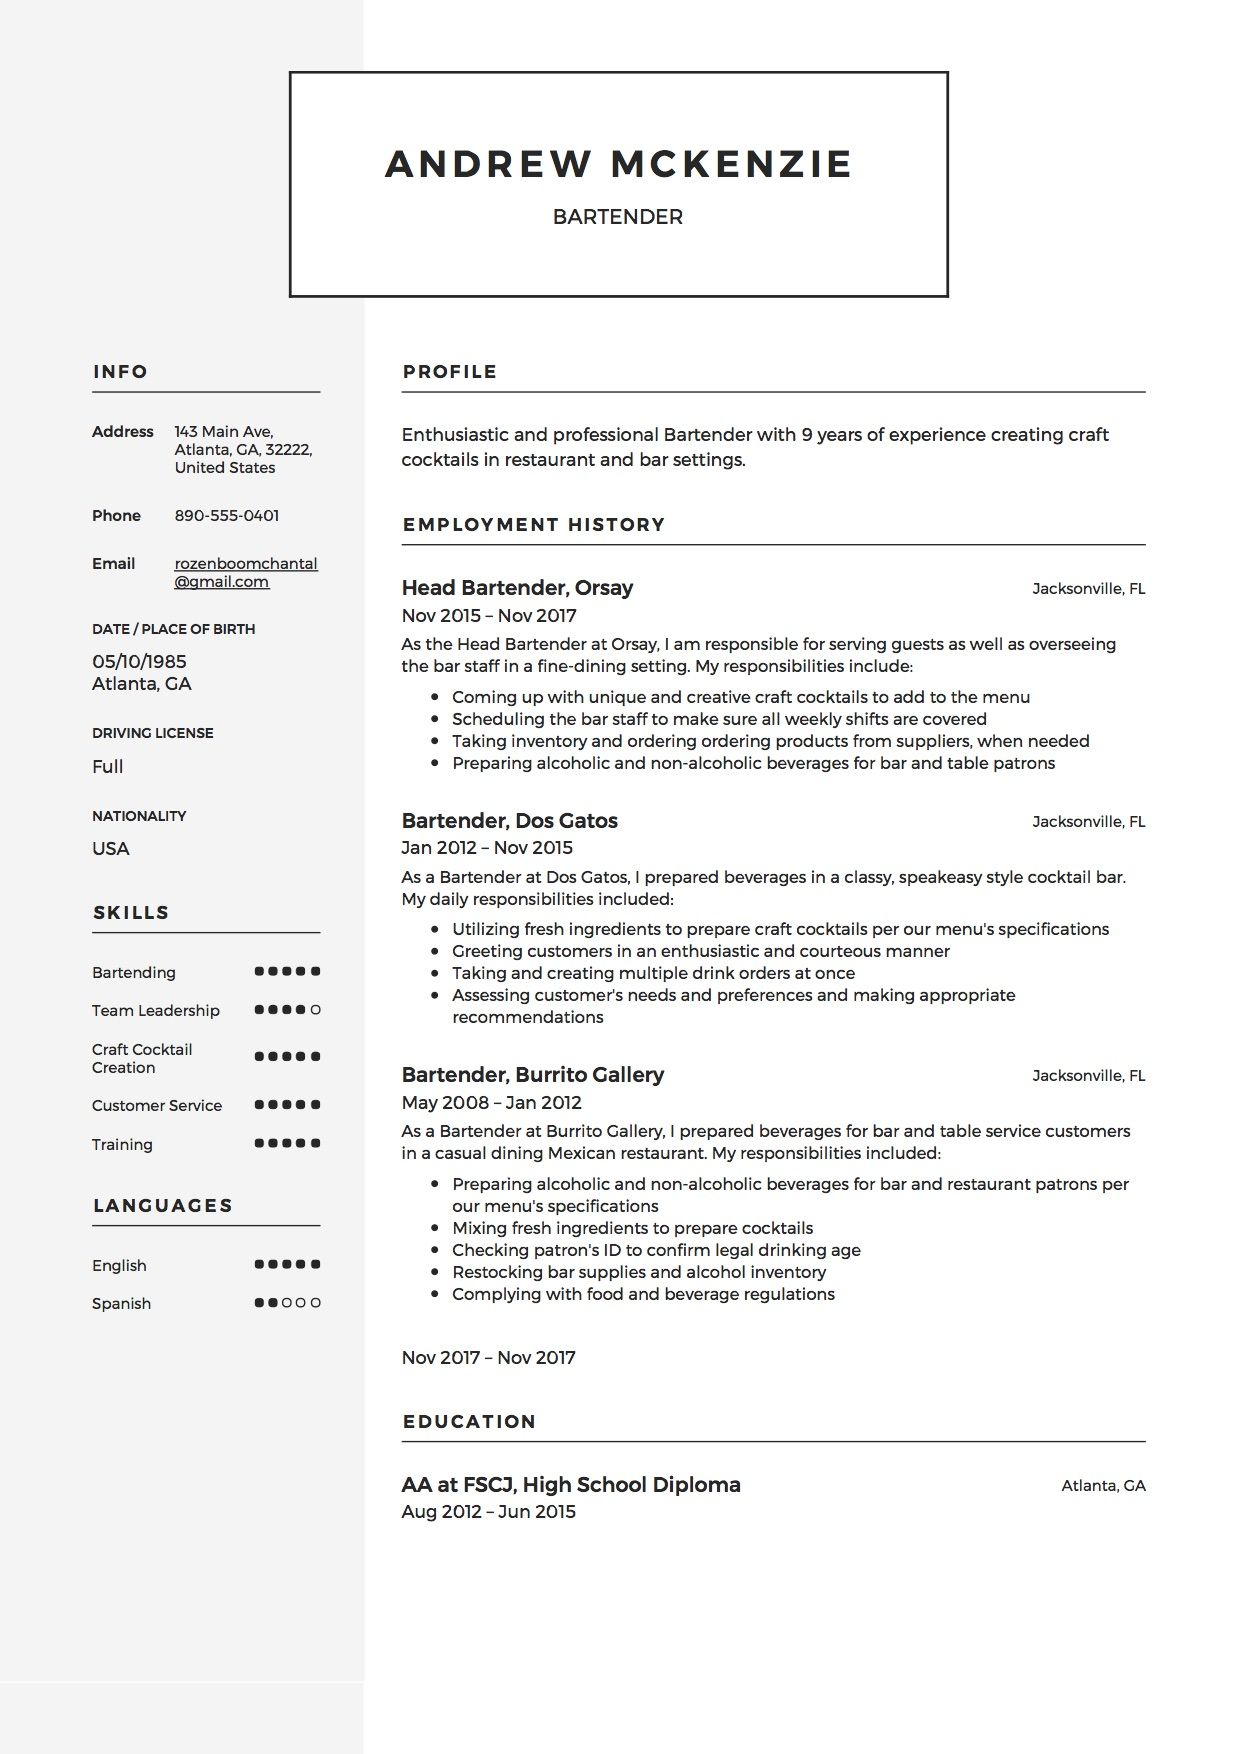 Bartender Resume Template, Sample, Example, Creative, CV. | Resume ...